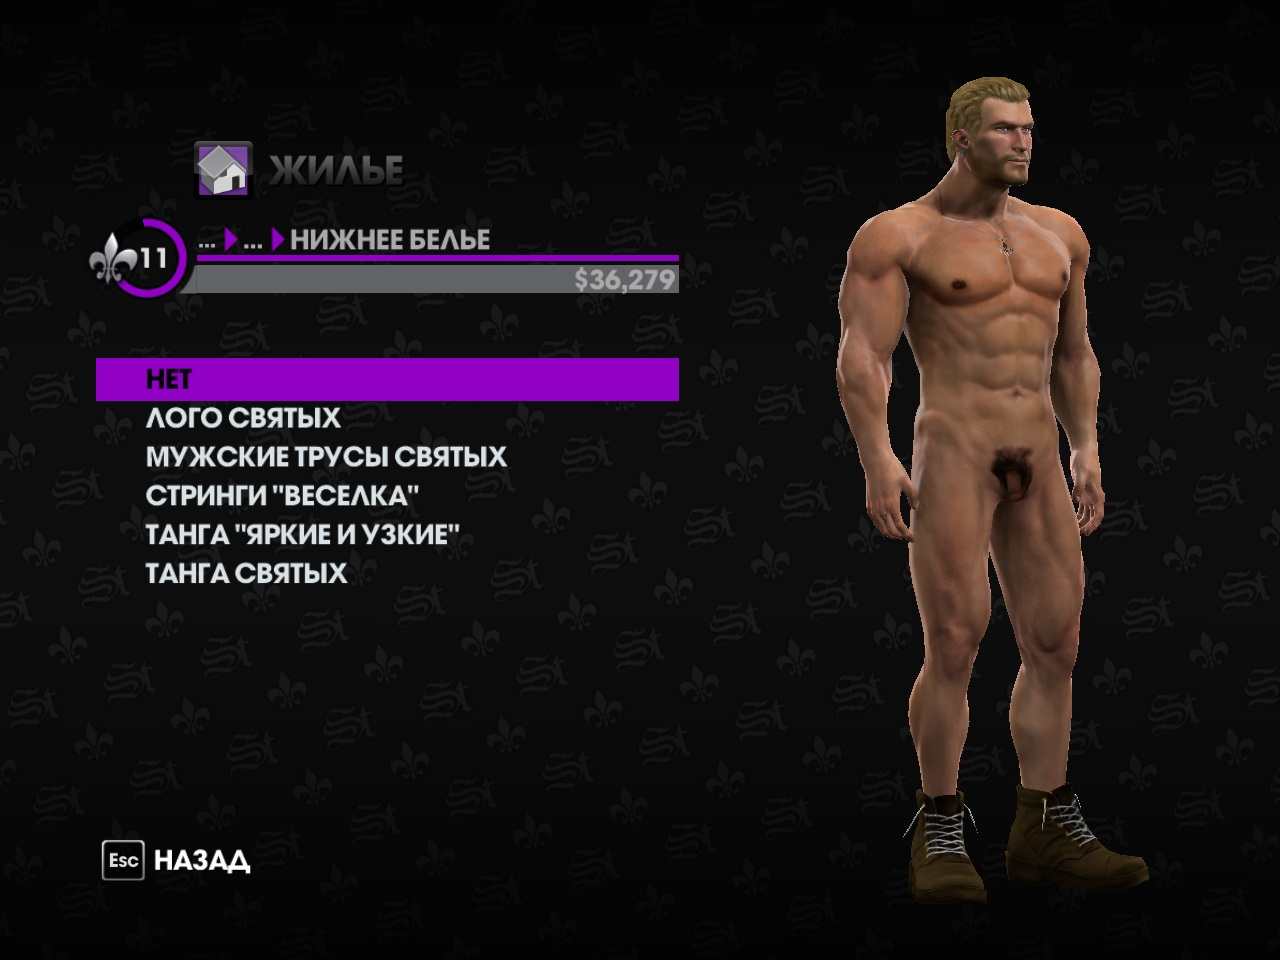 Saints row 4 nude mod download for  nackt vids